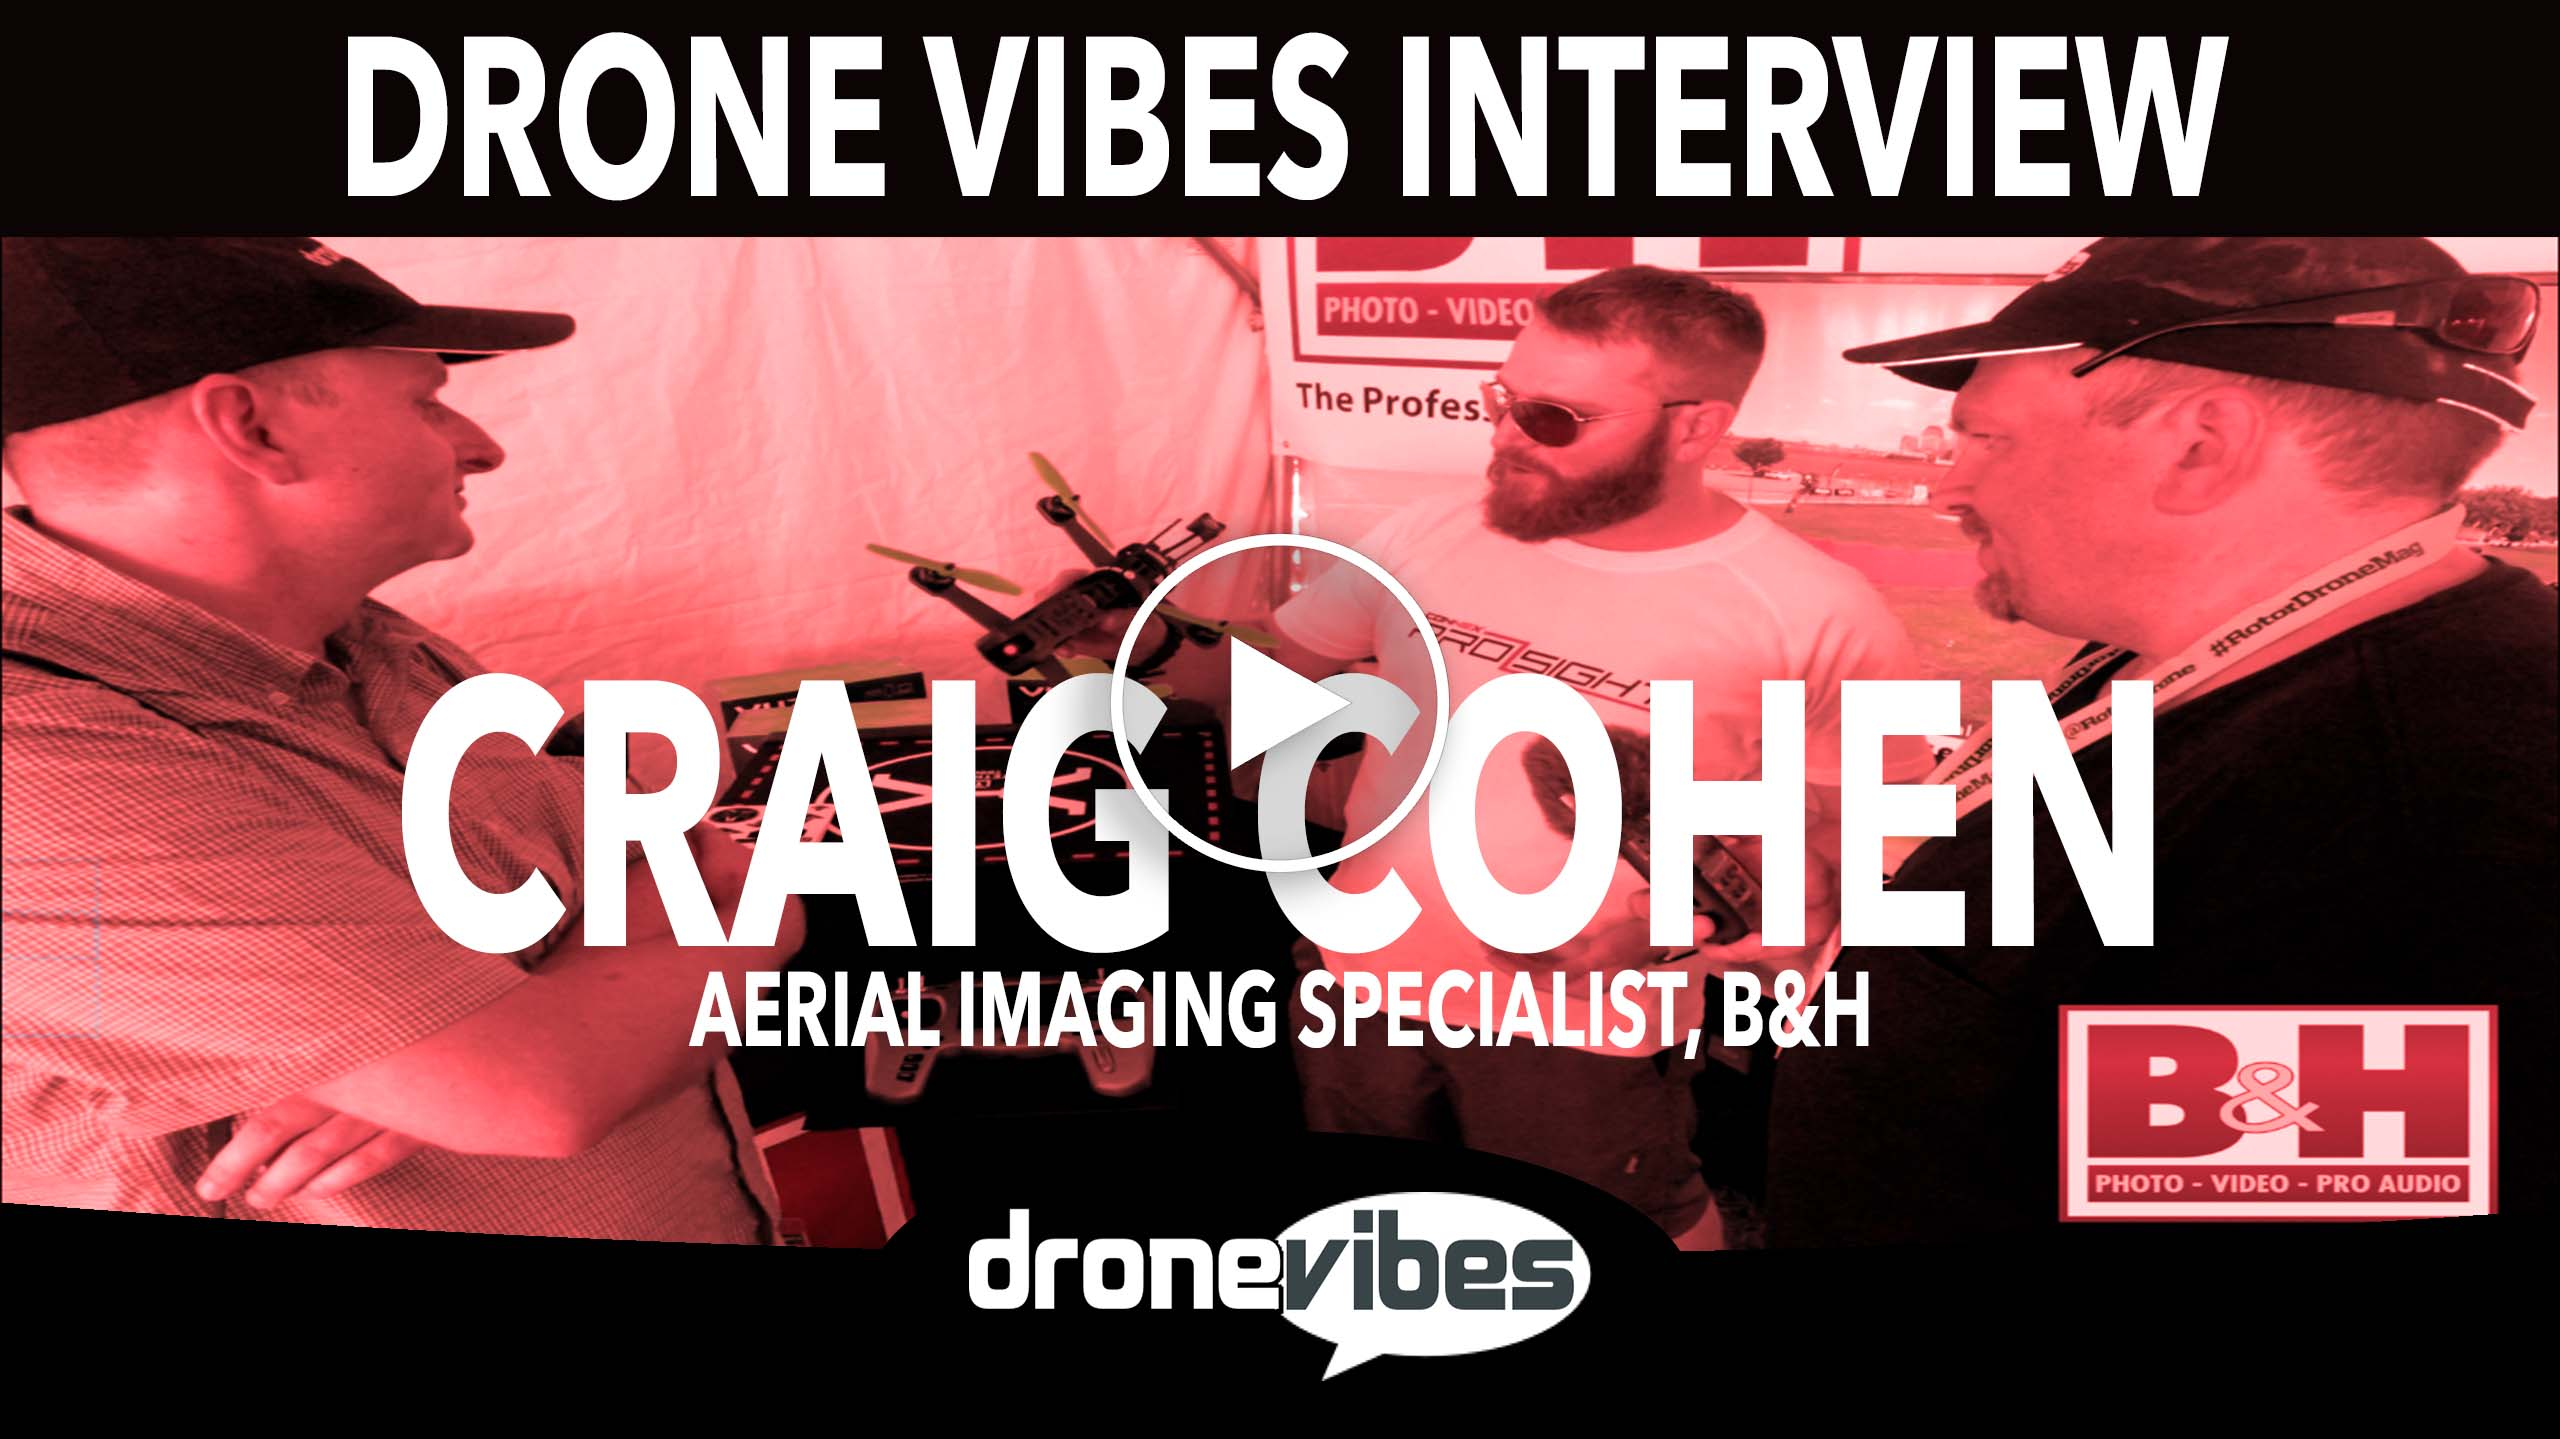 Drone Vibes Video: Interview with Craig Cohen, Aerial Imaging Specialist at B&H Photo – New Drone Racing Offerings: TBS Vendetta RTF, Ready to Build Kits.